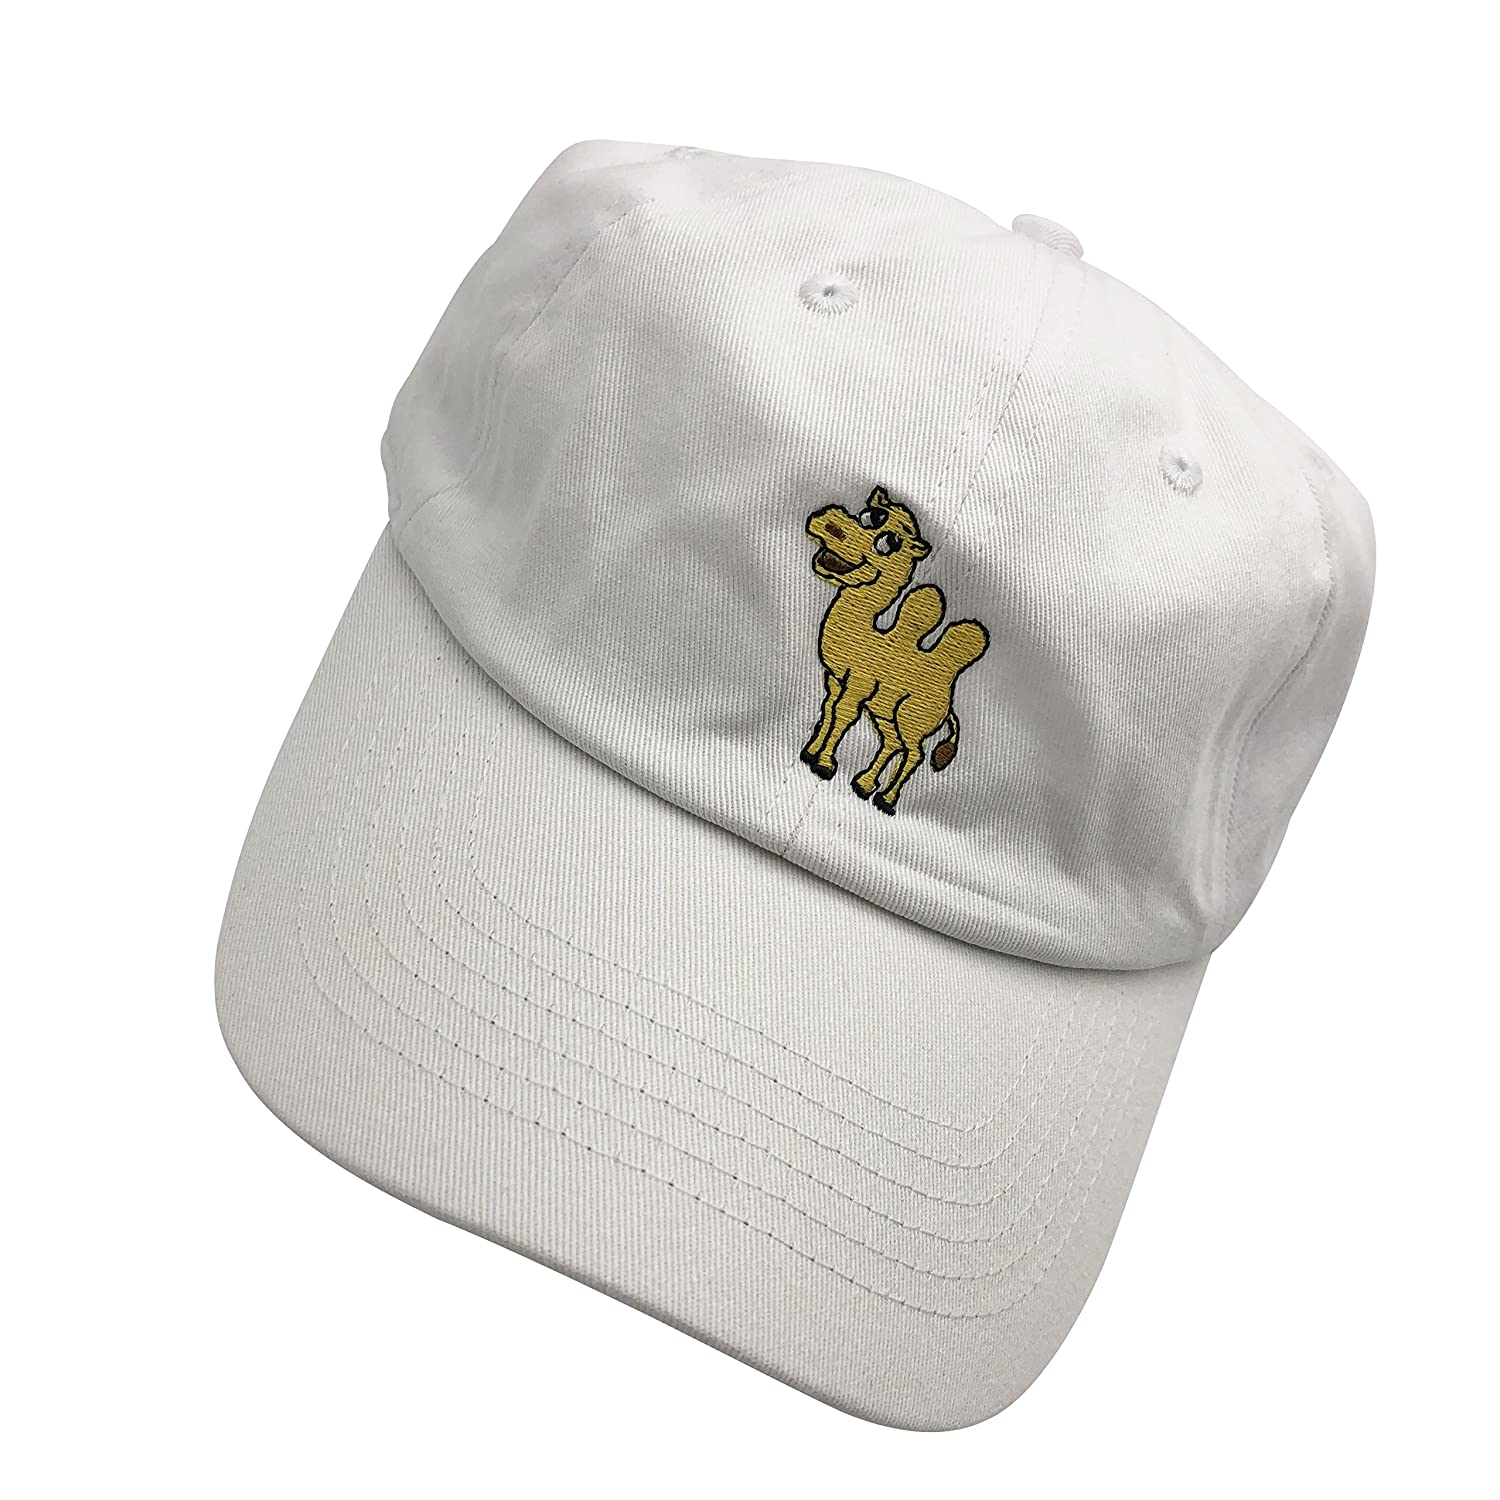 HC Camel Dad Hats Baseball Cap Embroidered Adjustable Snapback Cotton  Unisex White at Amazon Women s Clothing store  35719971c44